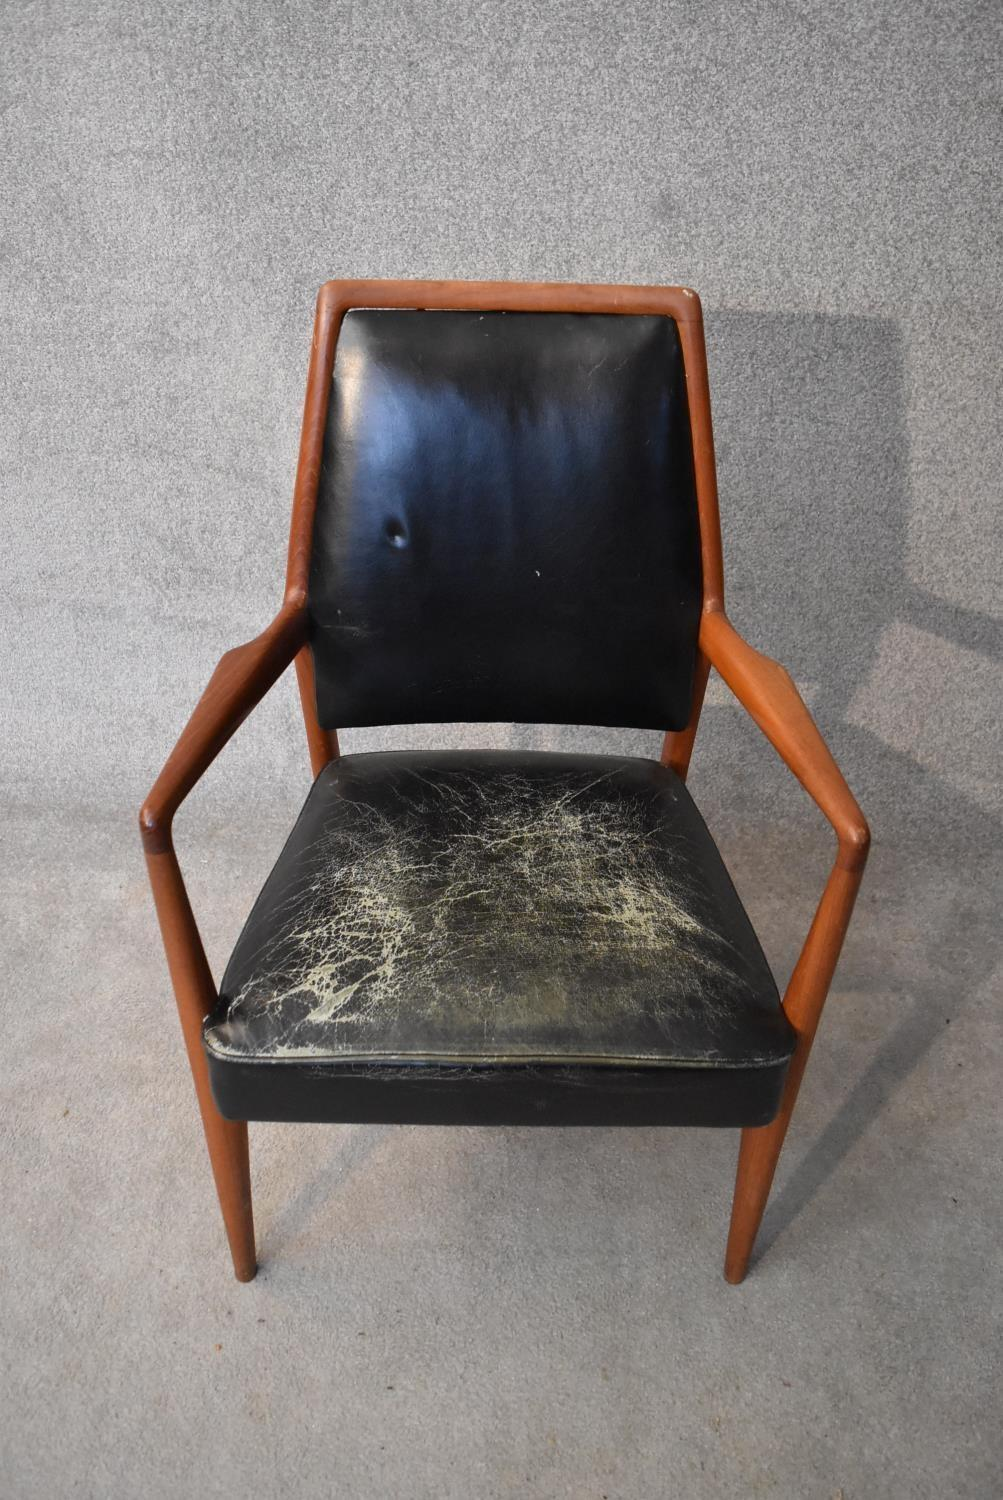 A mid 20th century vintage Danish teak framed armchair in leather upholstery. H.98x60cm - Image 2 of 4